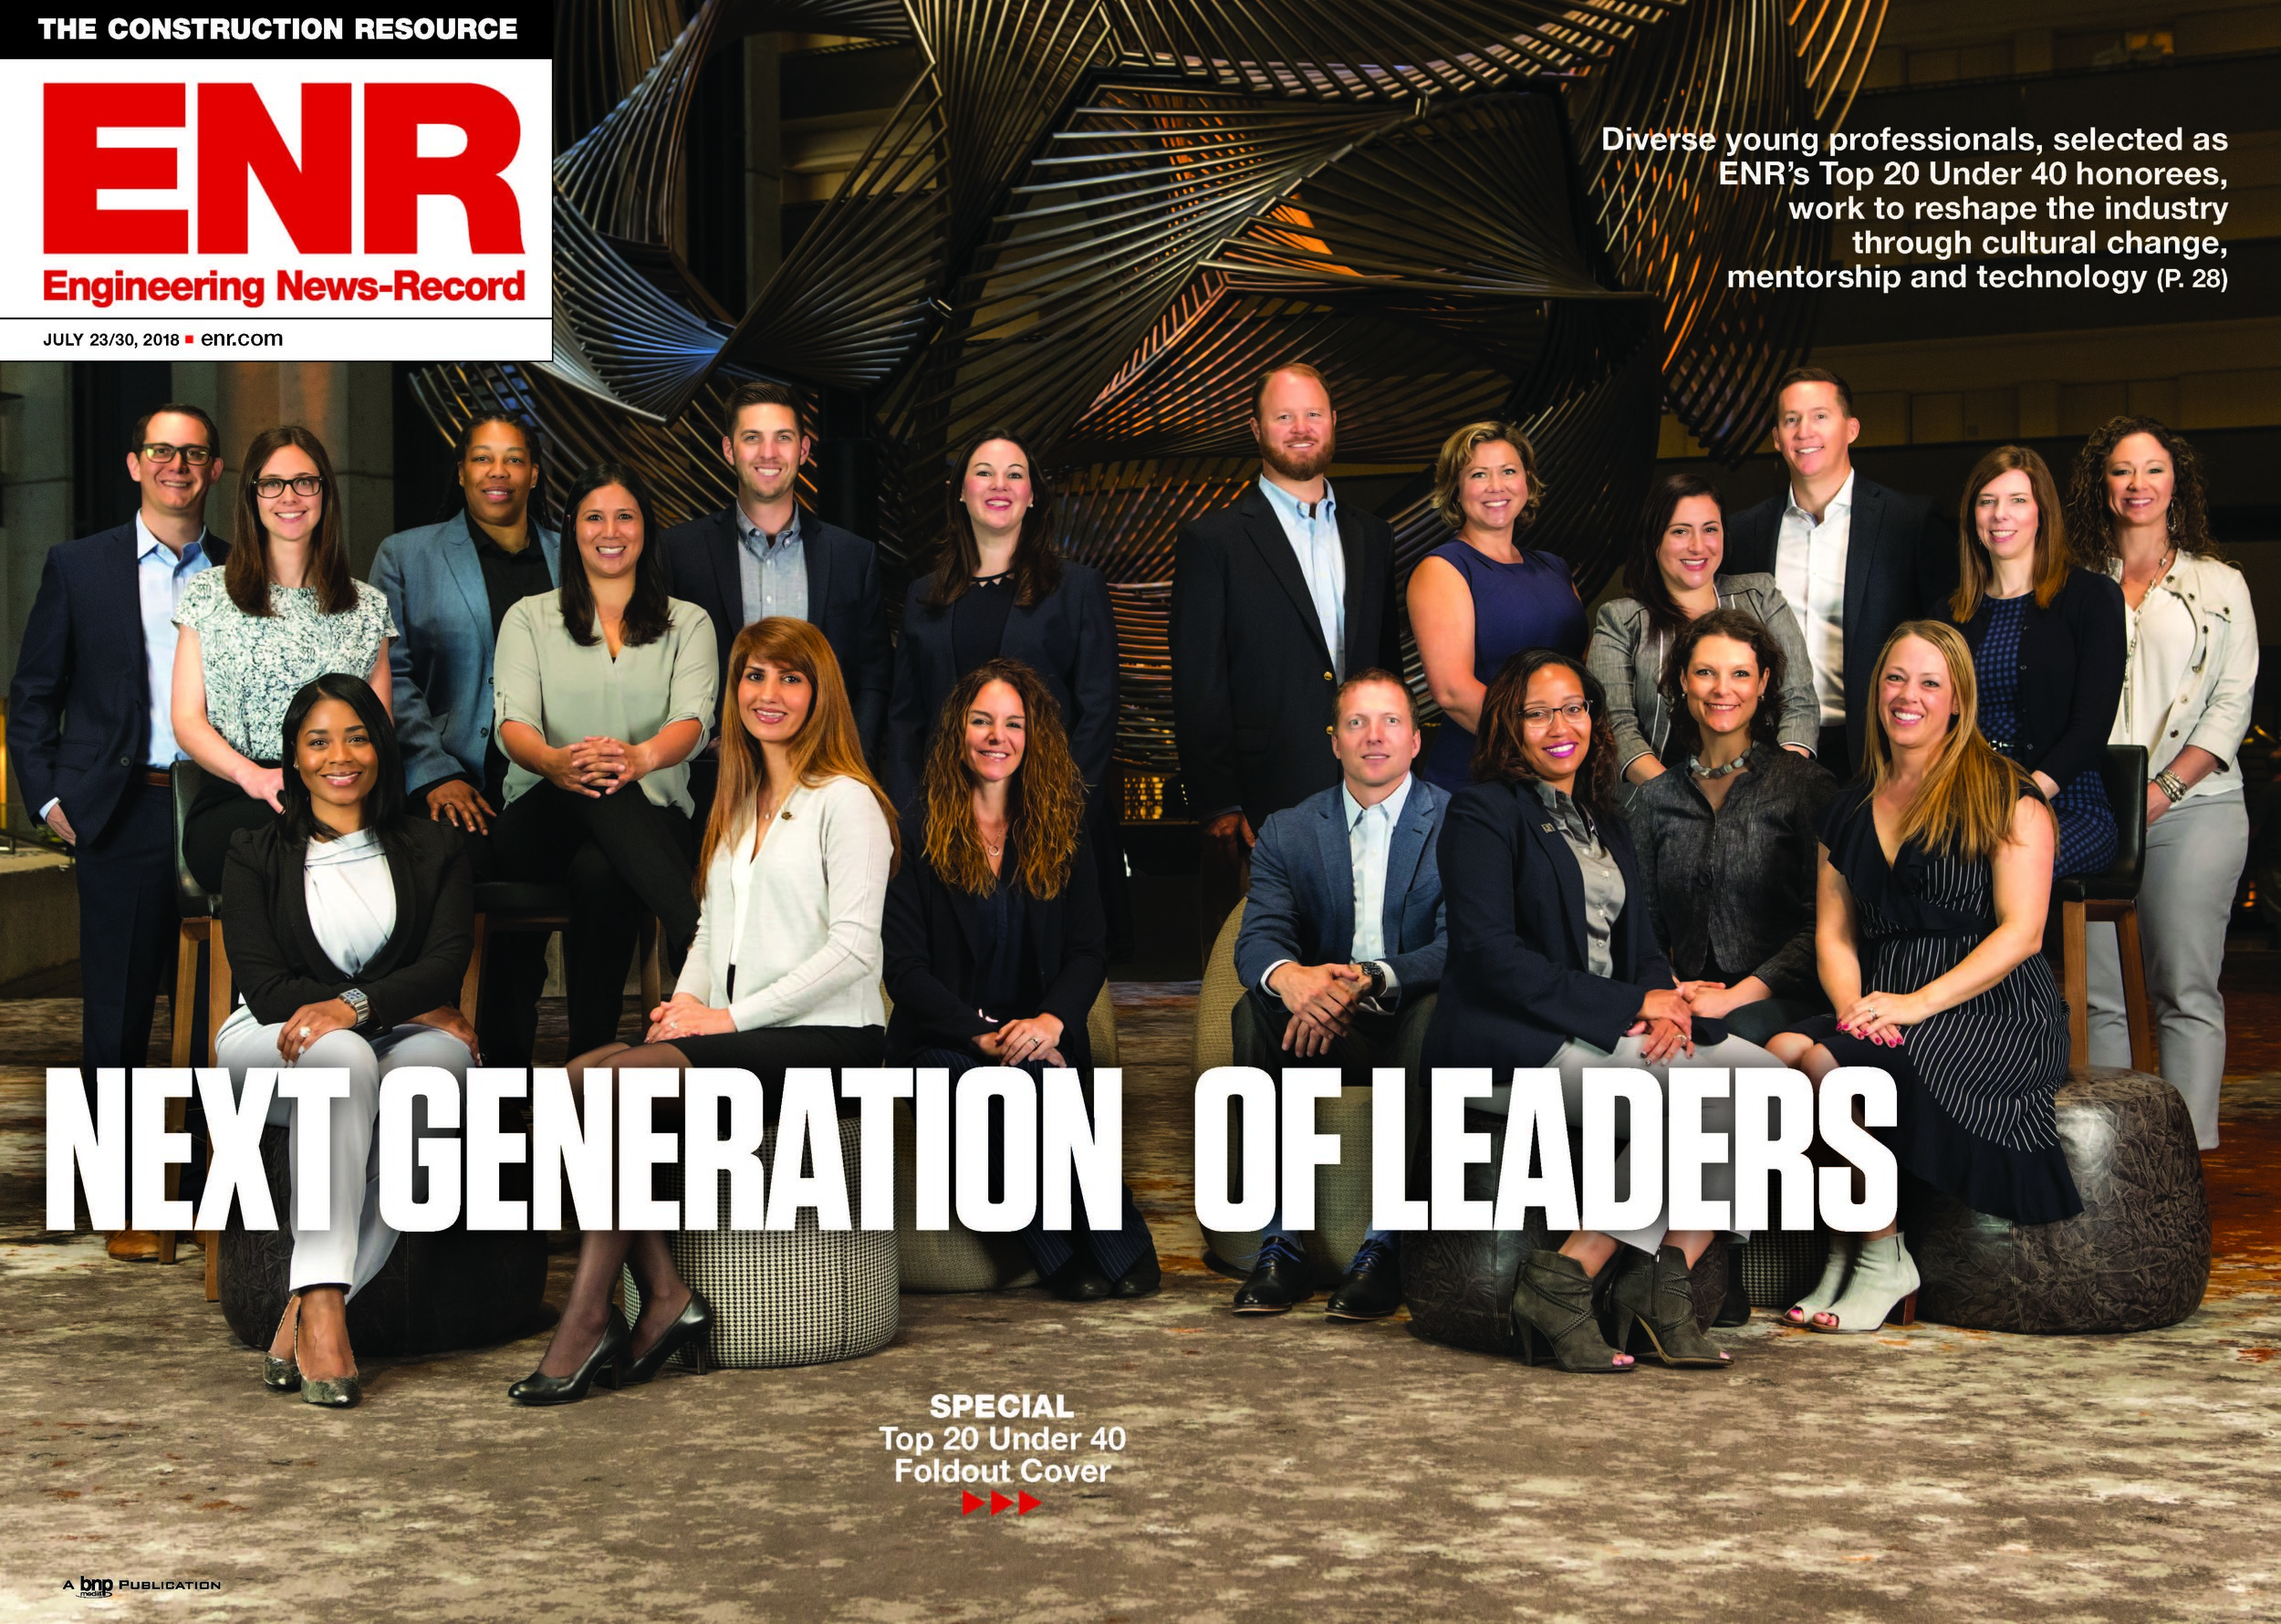 ENR Cover - Top 20 Under 40